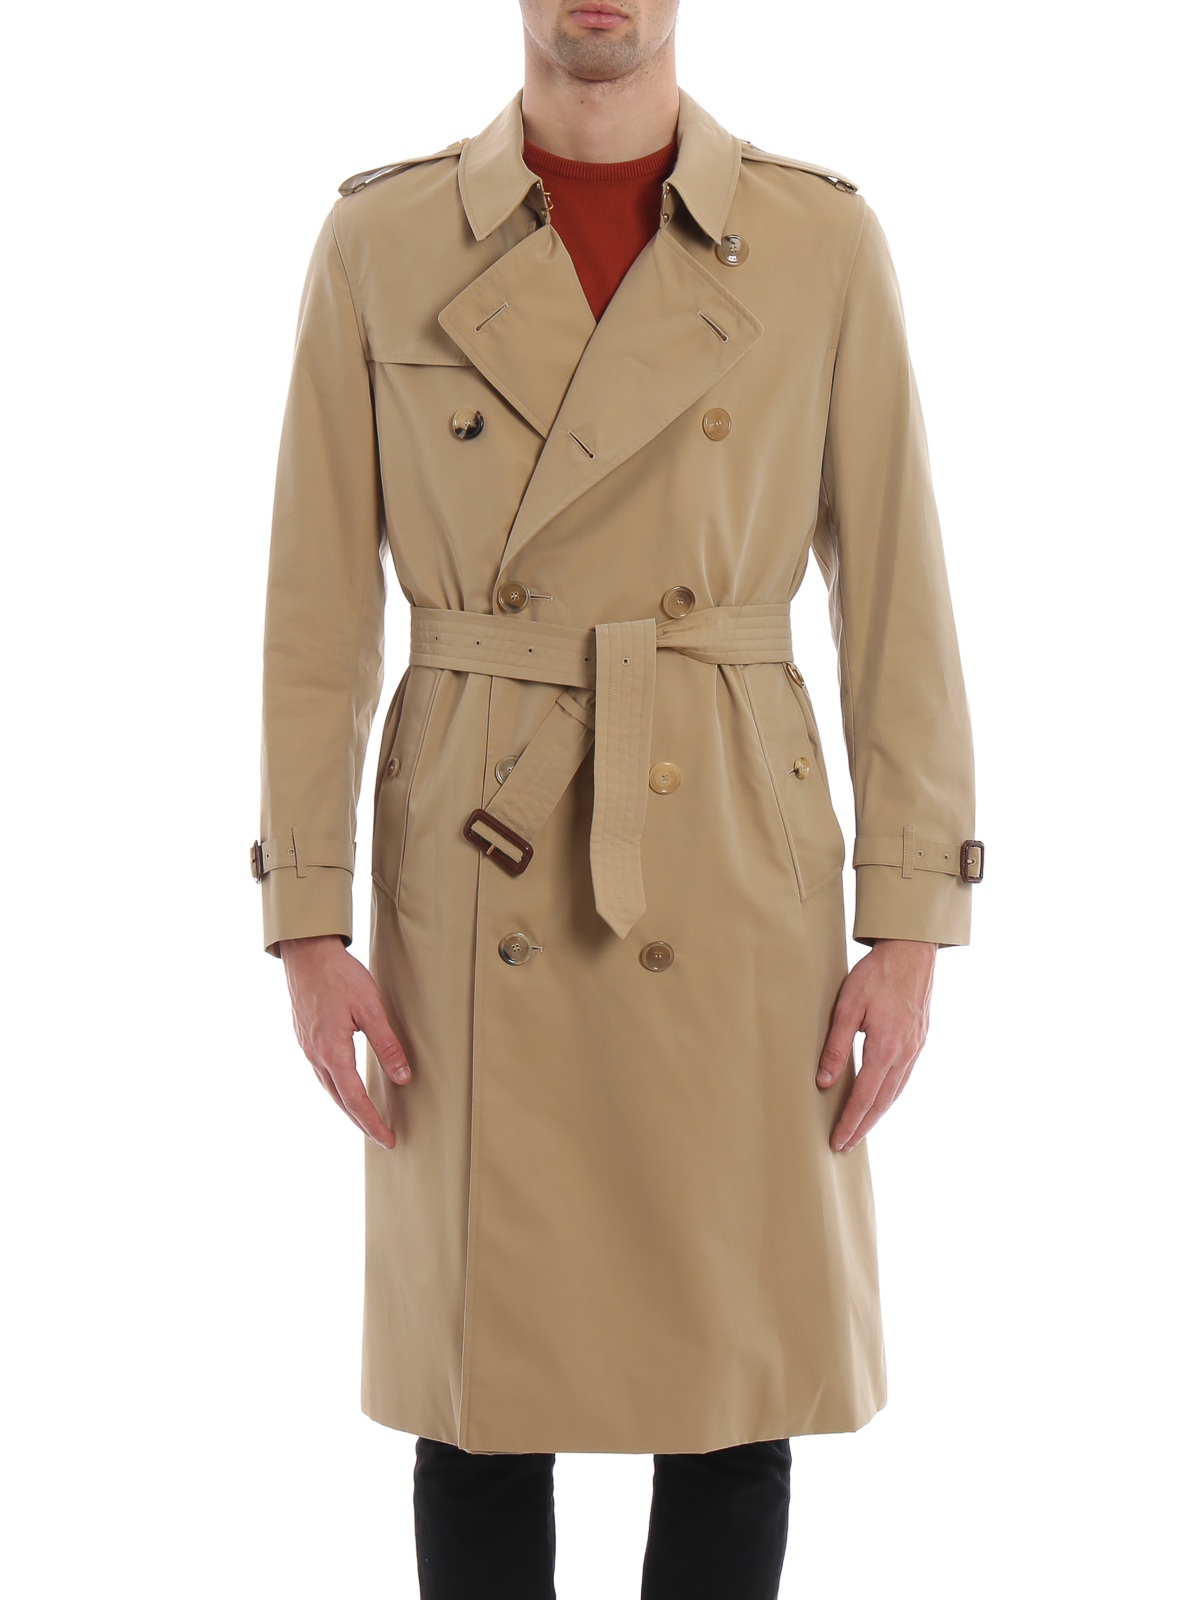 c9a66173a753 iKRIX BURBERRY  trench coats - The Kensington long gabardine trench coat